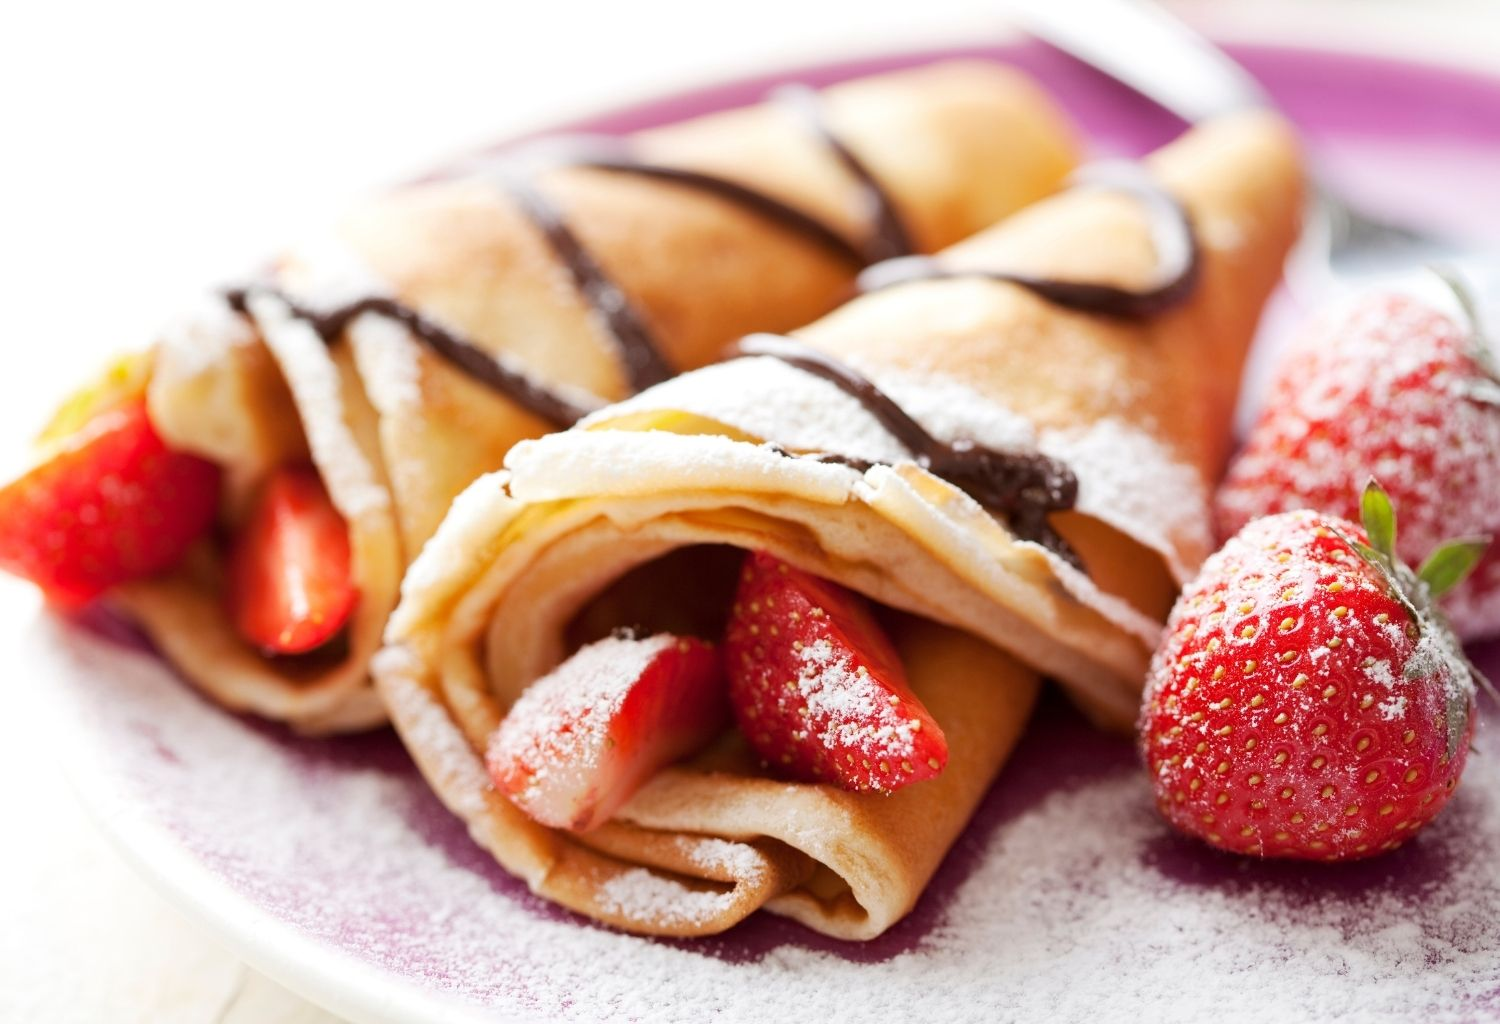 pancakes with strawberry and chocolate toppings